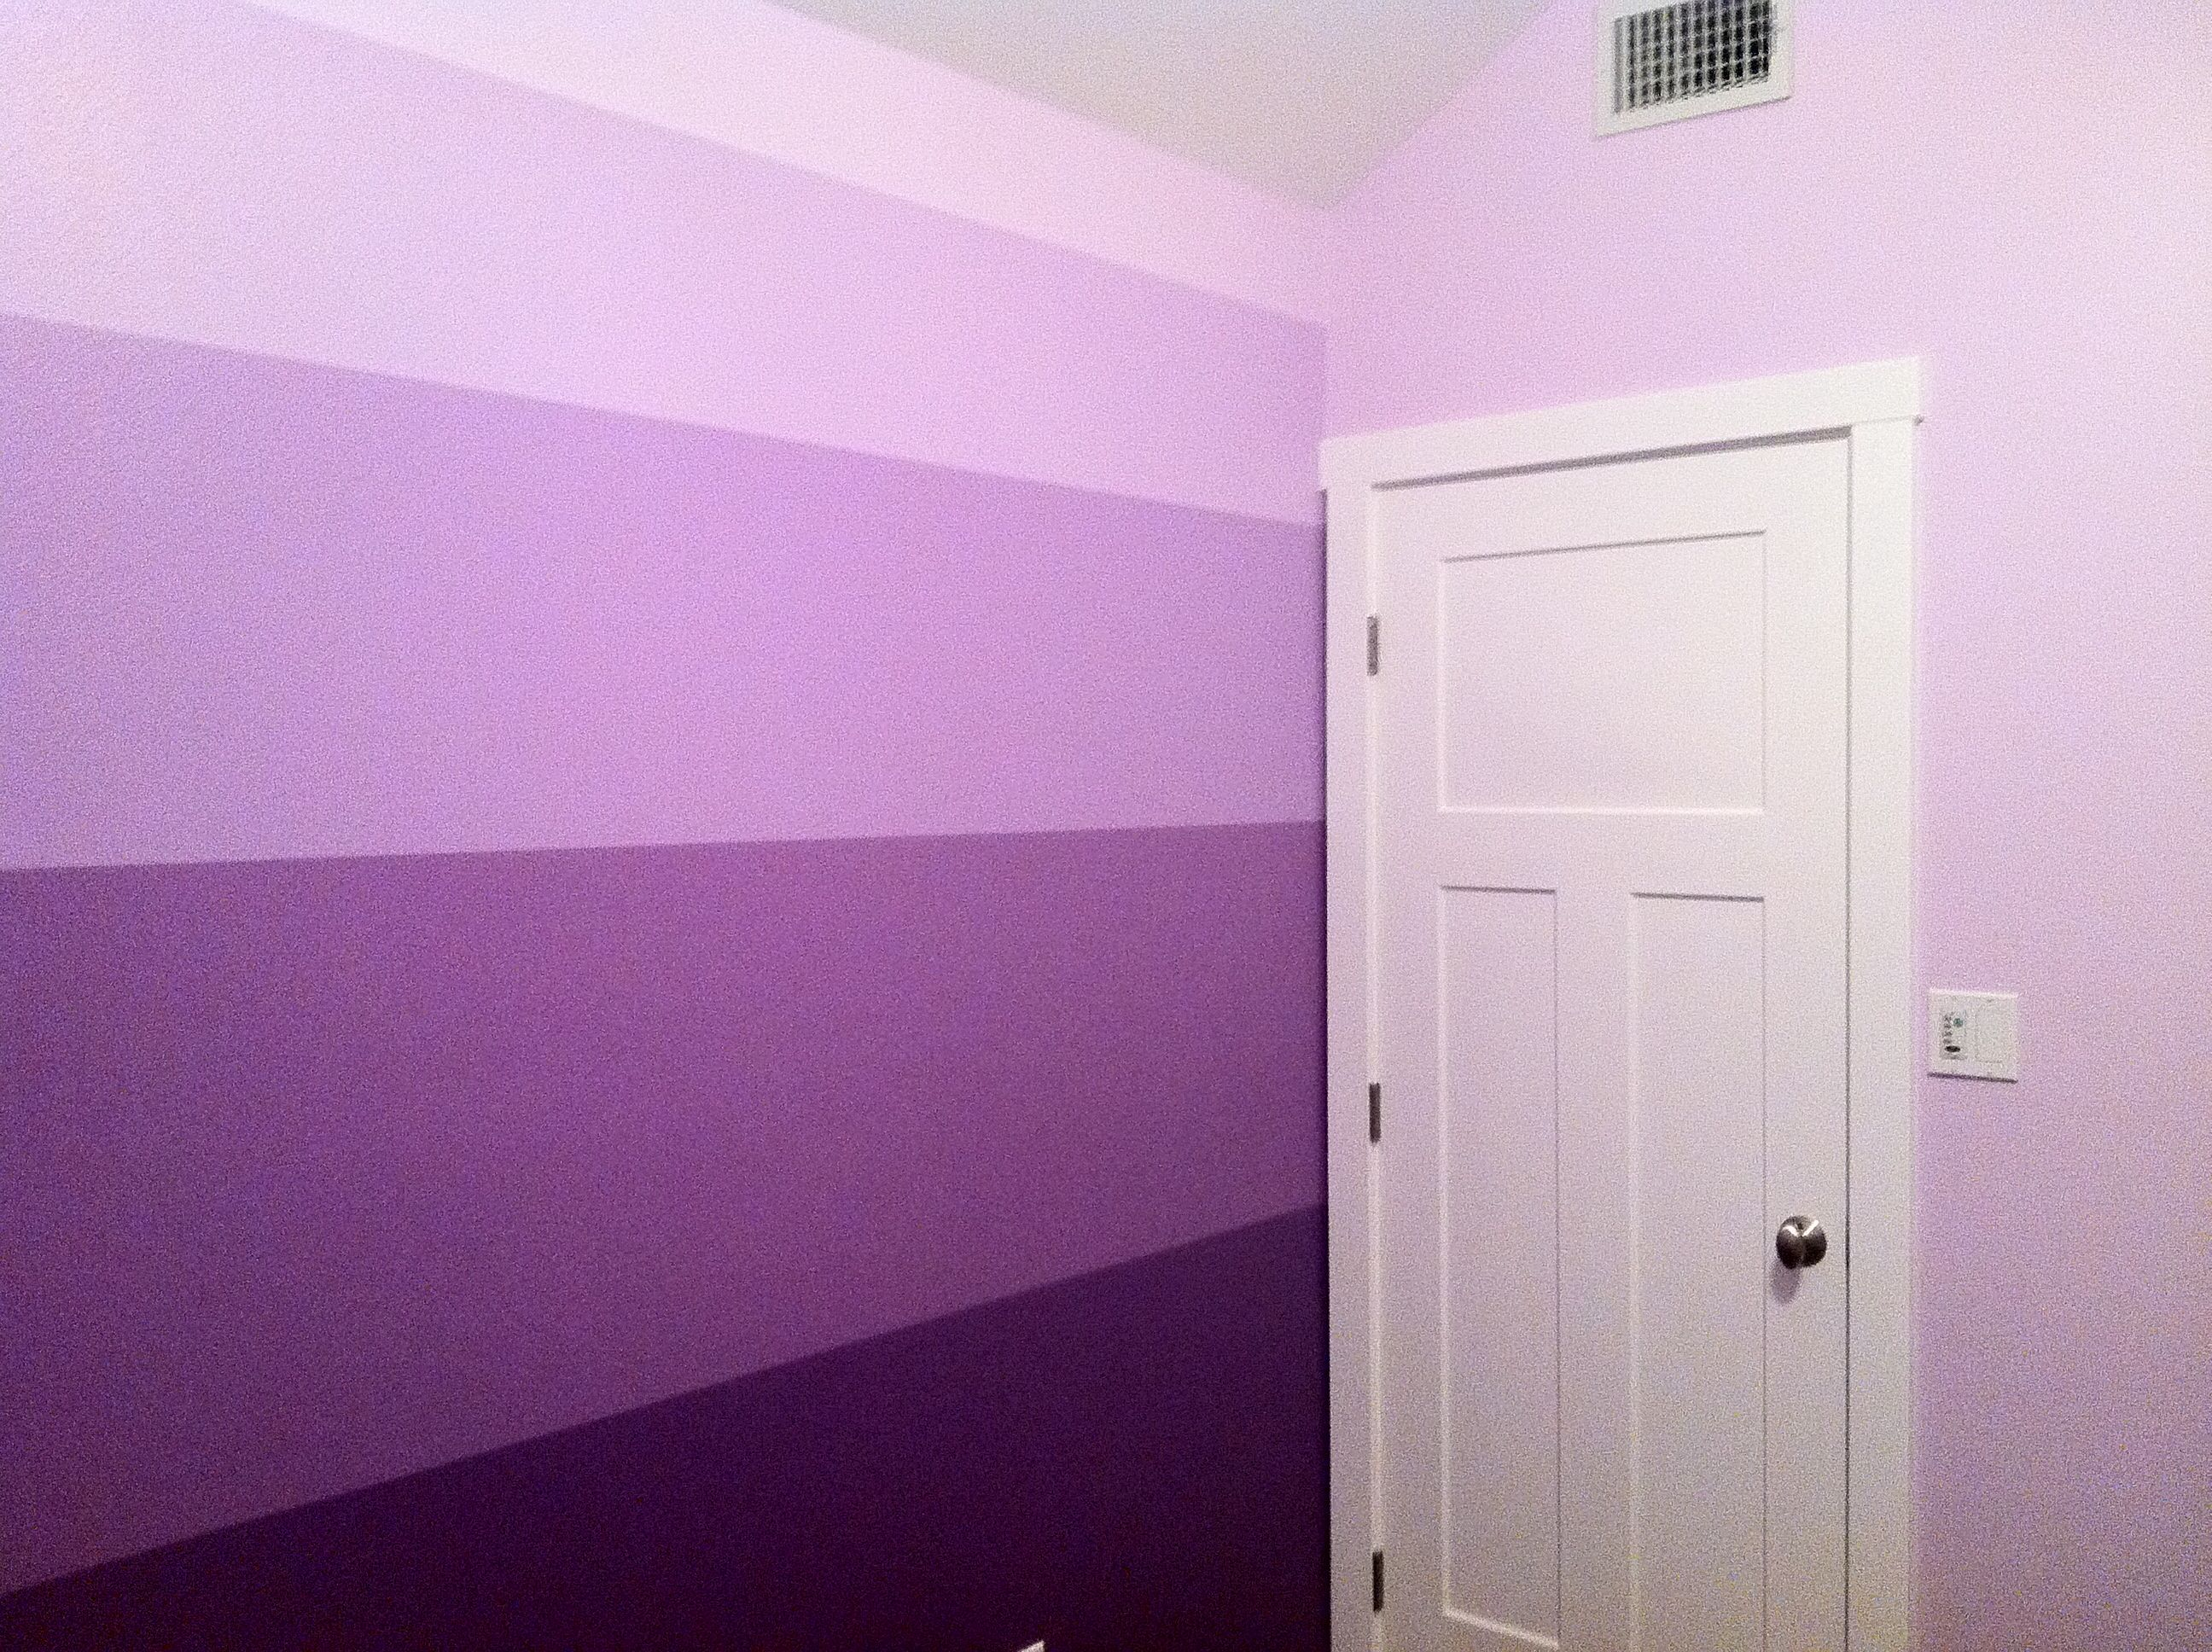 Blue Purple Bedroom Ideas Part - 40: The Girlsu0027 Ombré Purple Bedroom I Painted! I Used The Lightest And Darkest  Colors On A Paint Card. Then Mixed Both For The Middle Color. Top Halu2026